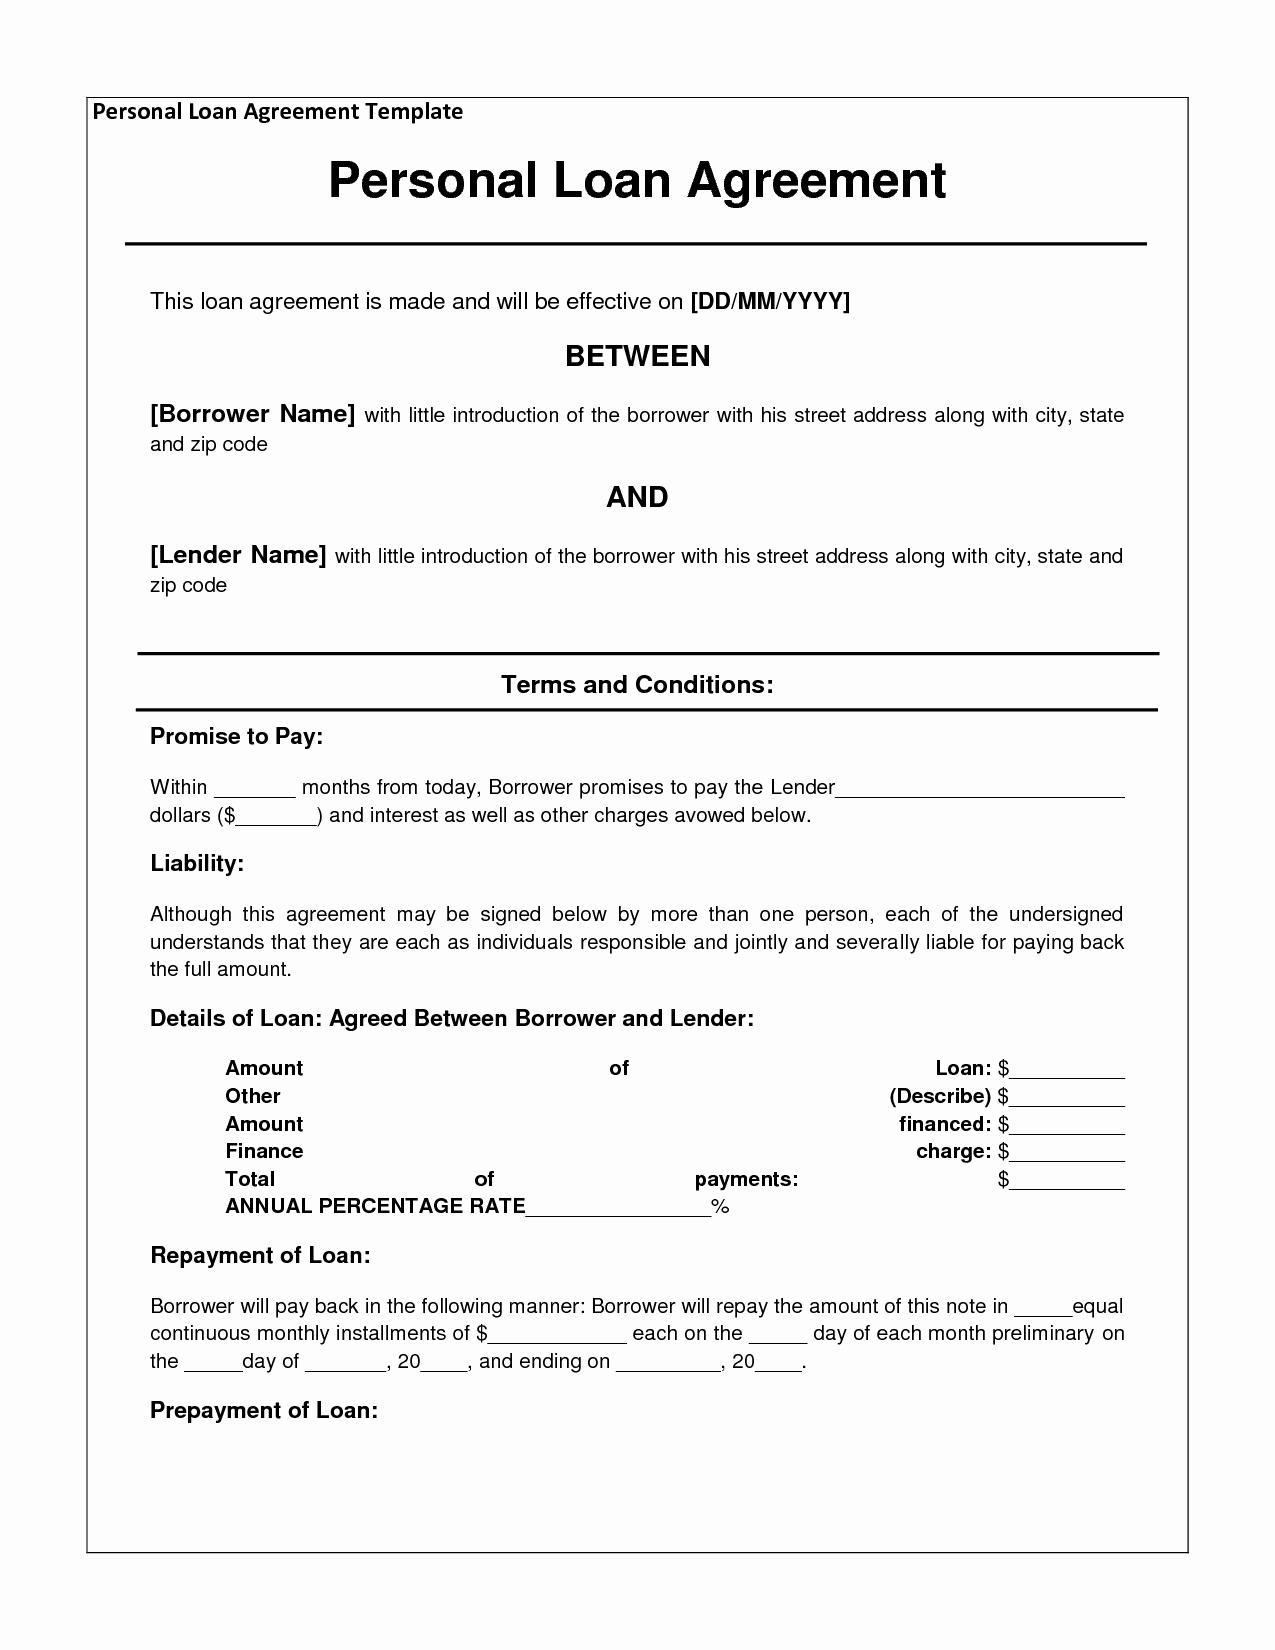 Personal Loan Promissory Note Template Awesome Pinterest